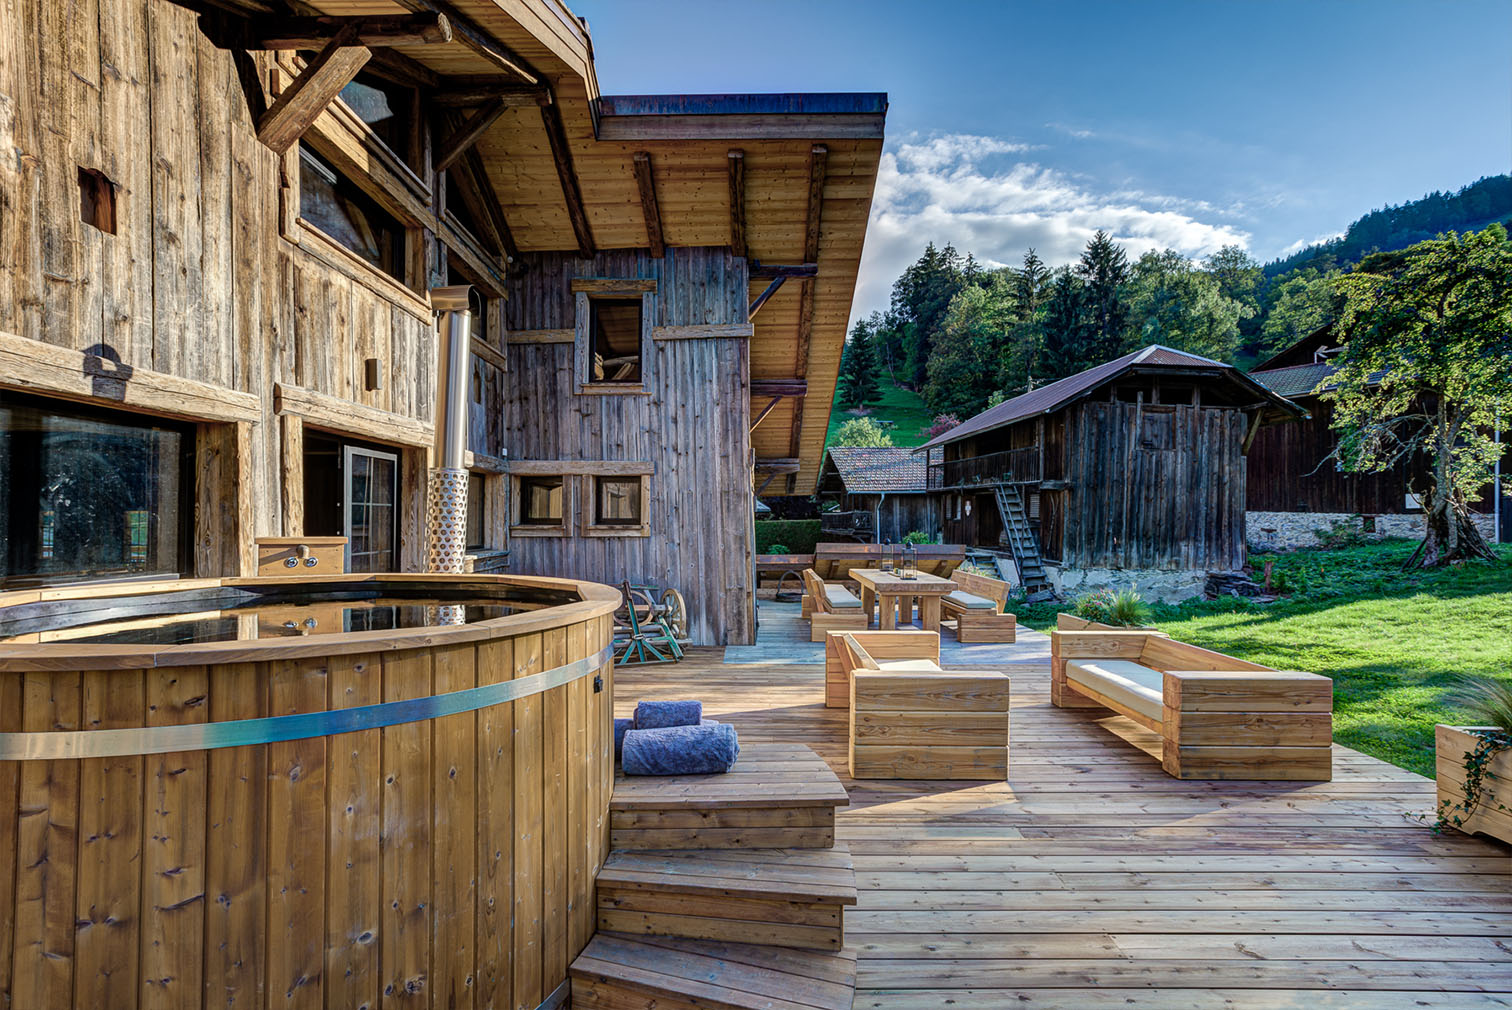 Ferme Fougere in Saint-Gervais-Les-Bains, French Alps